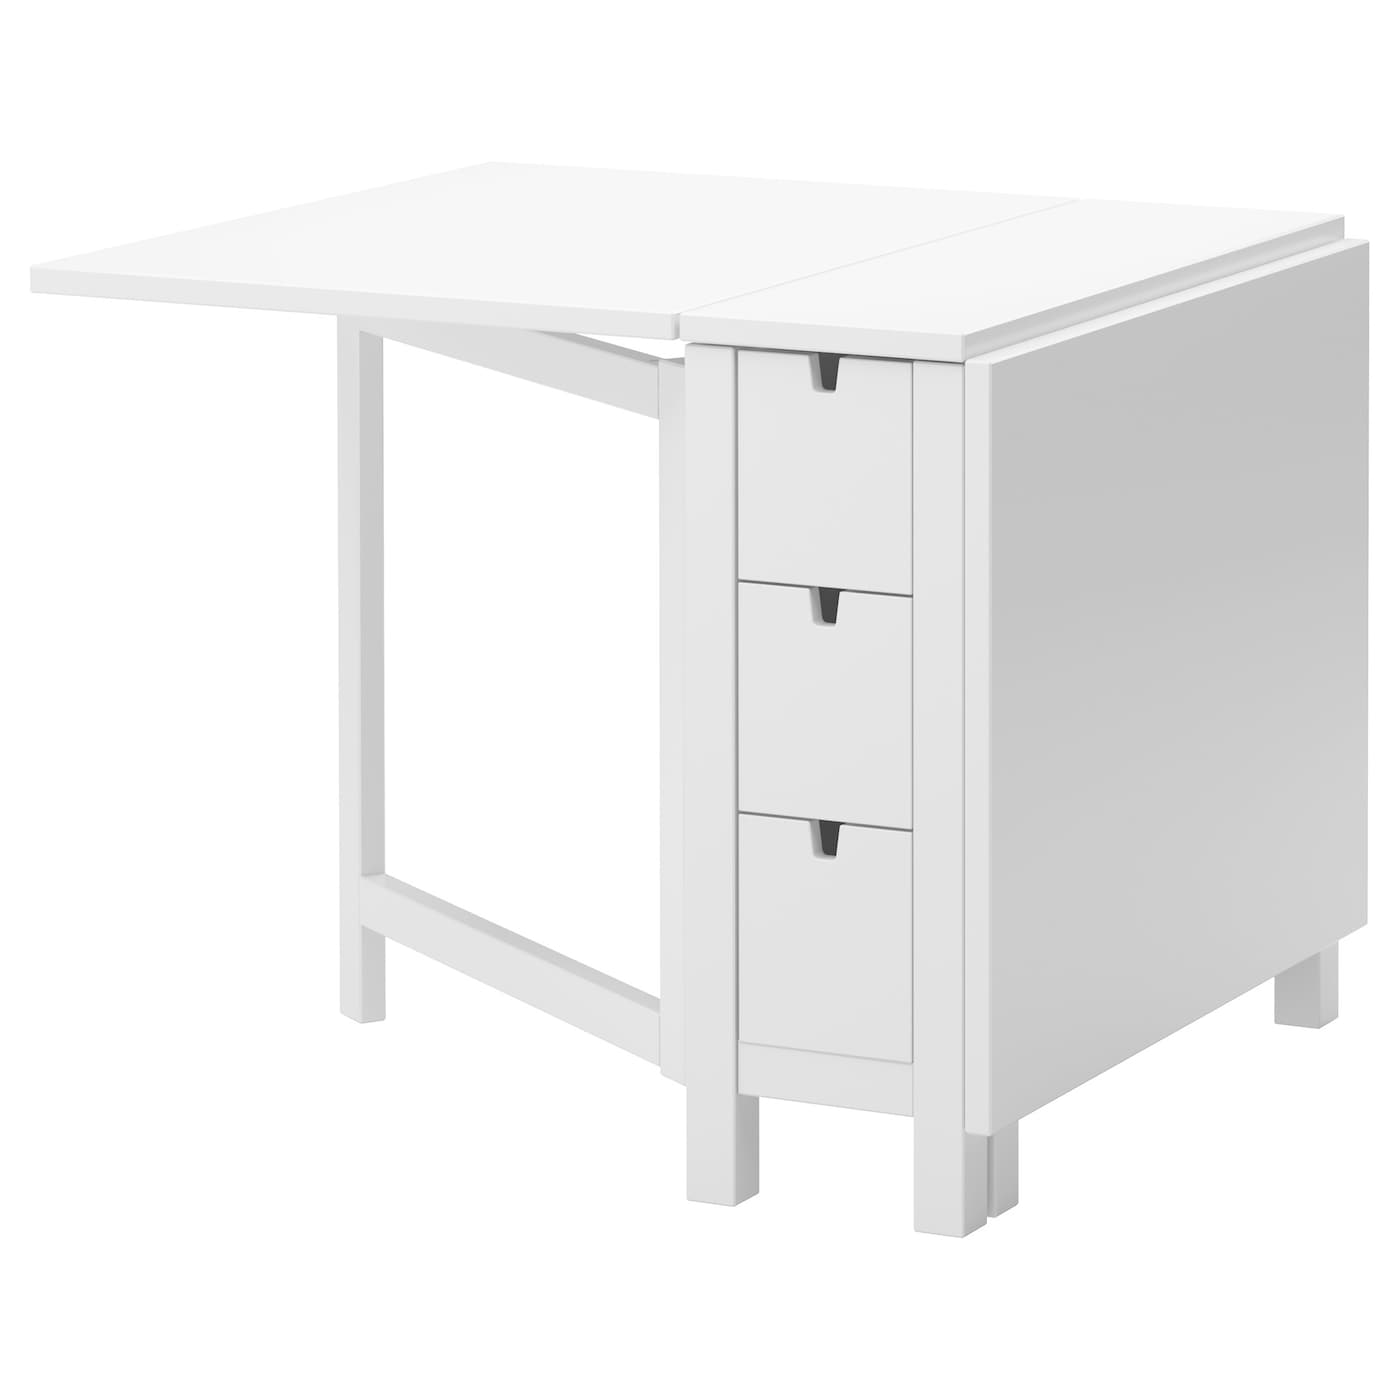 Ikea dining tables ikea ireland dublin - Table pliante pour balcon ikea ...